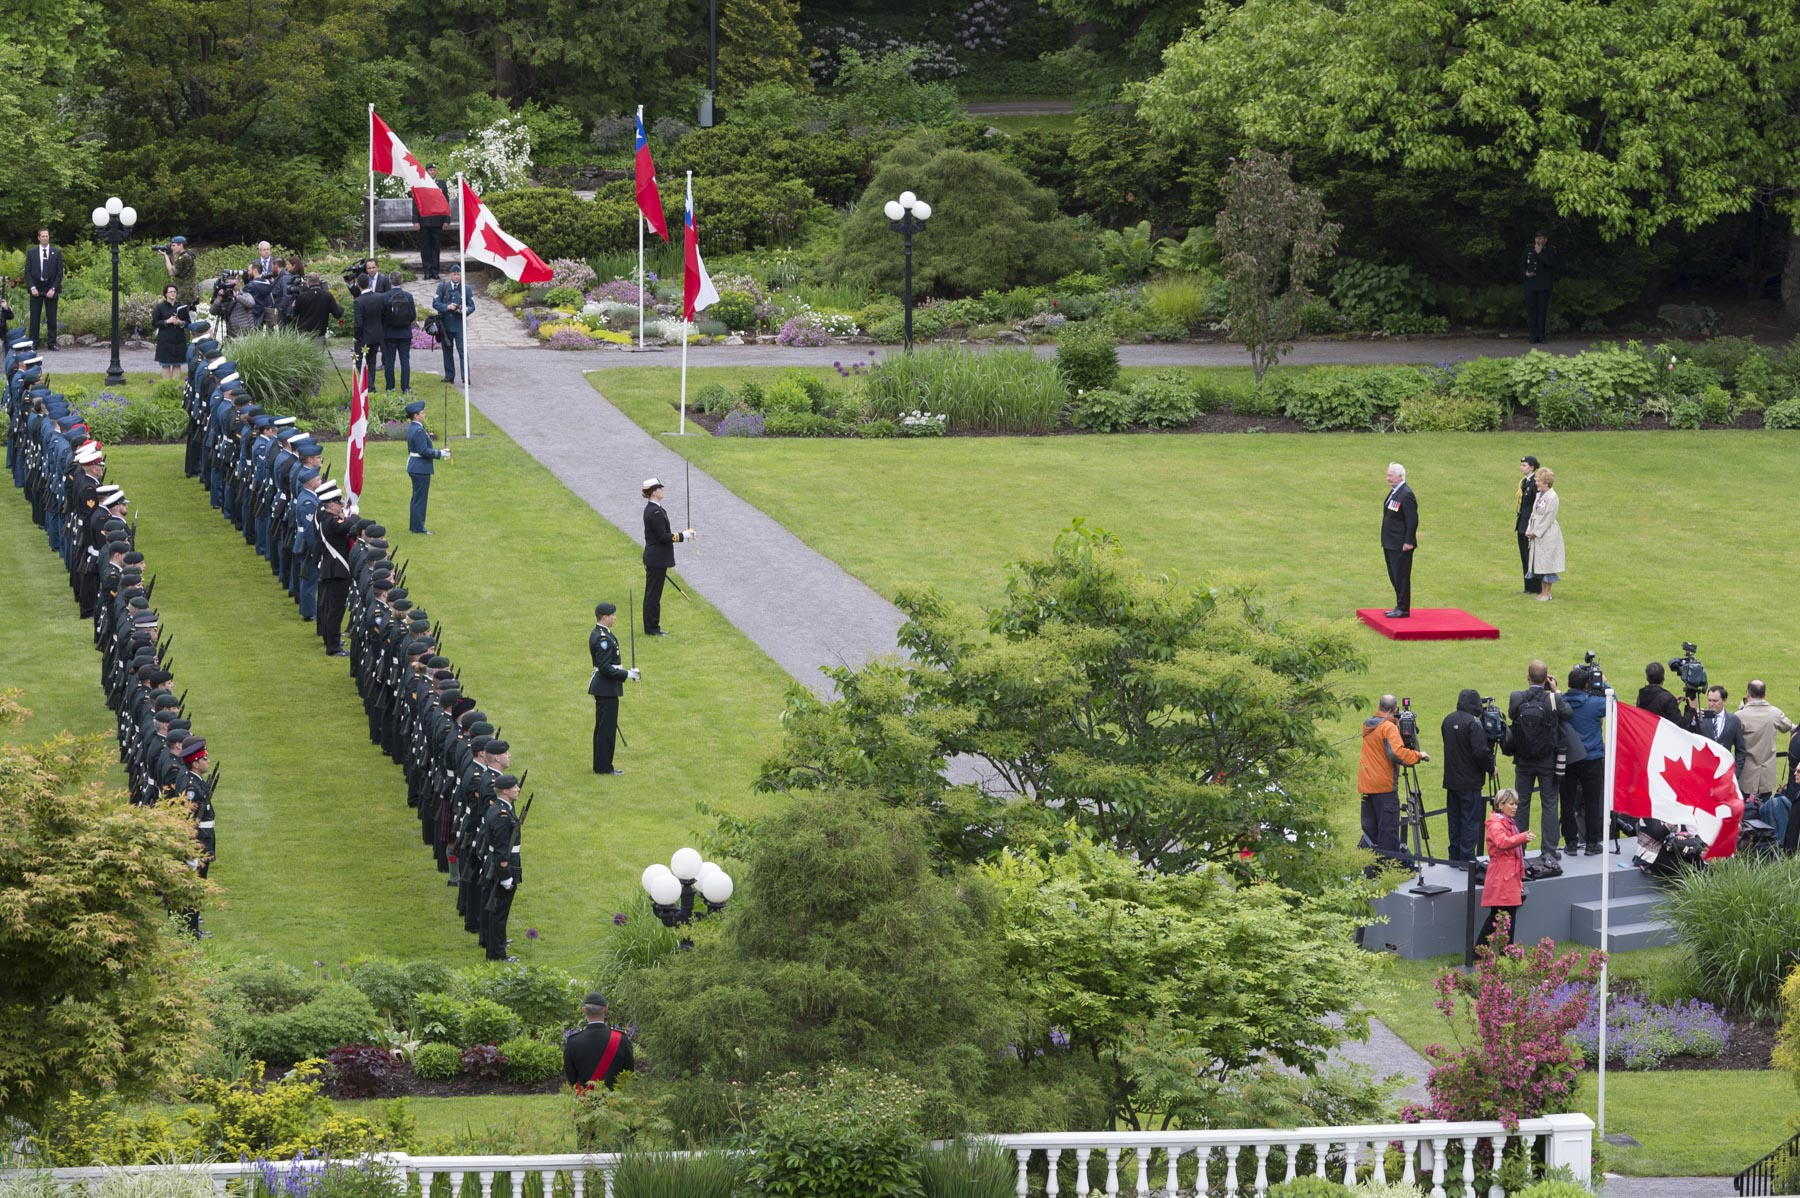 The ceremony took place in the private gardens of the official residence and workplace of the Governor General.